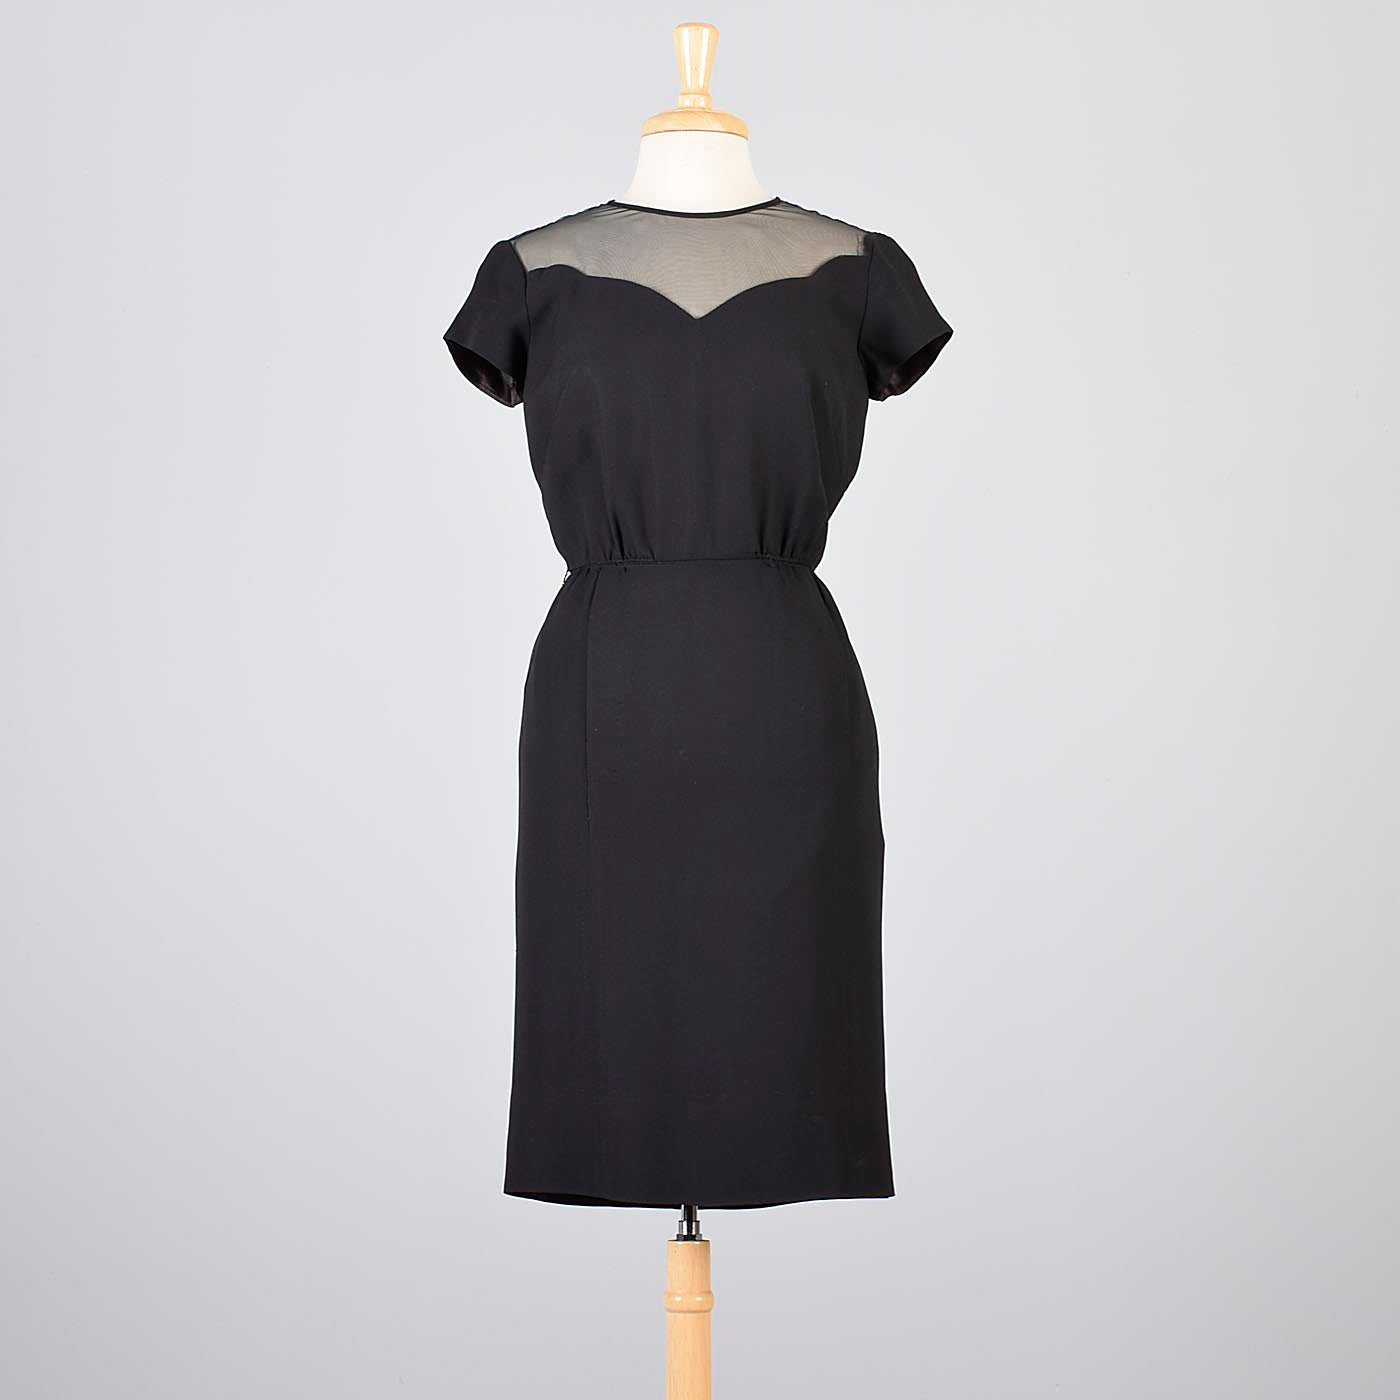 1960s Little Black Dress with Sheer Chiffon Shoulders